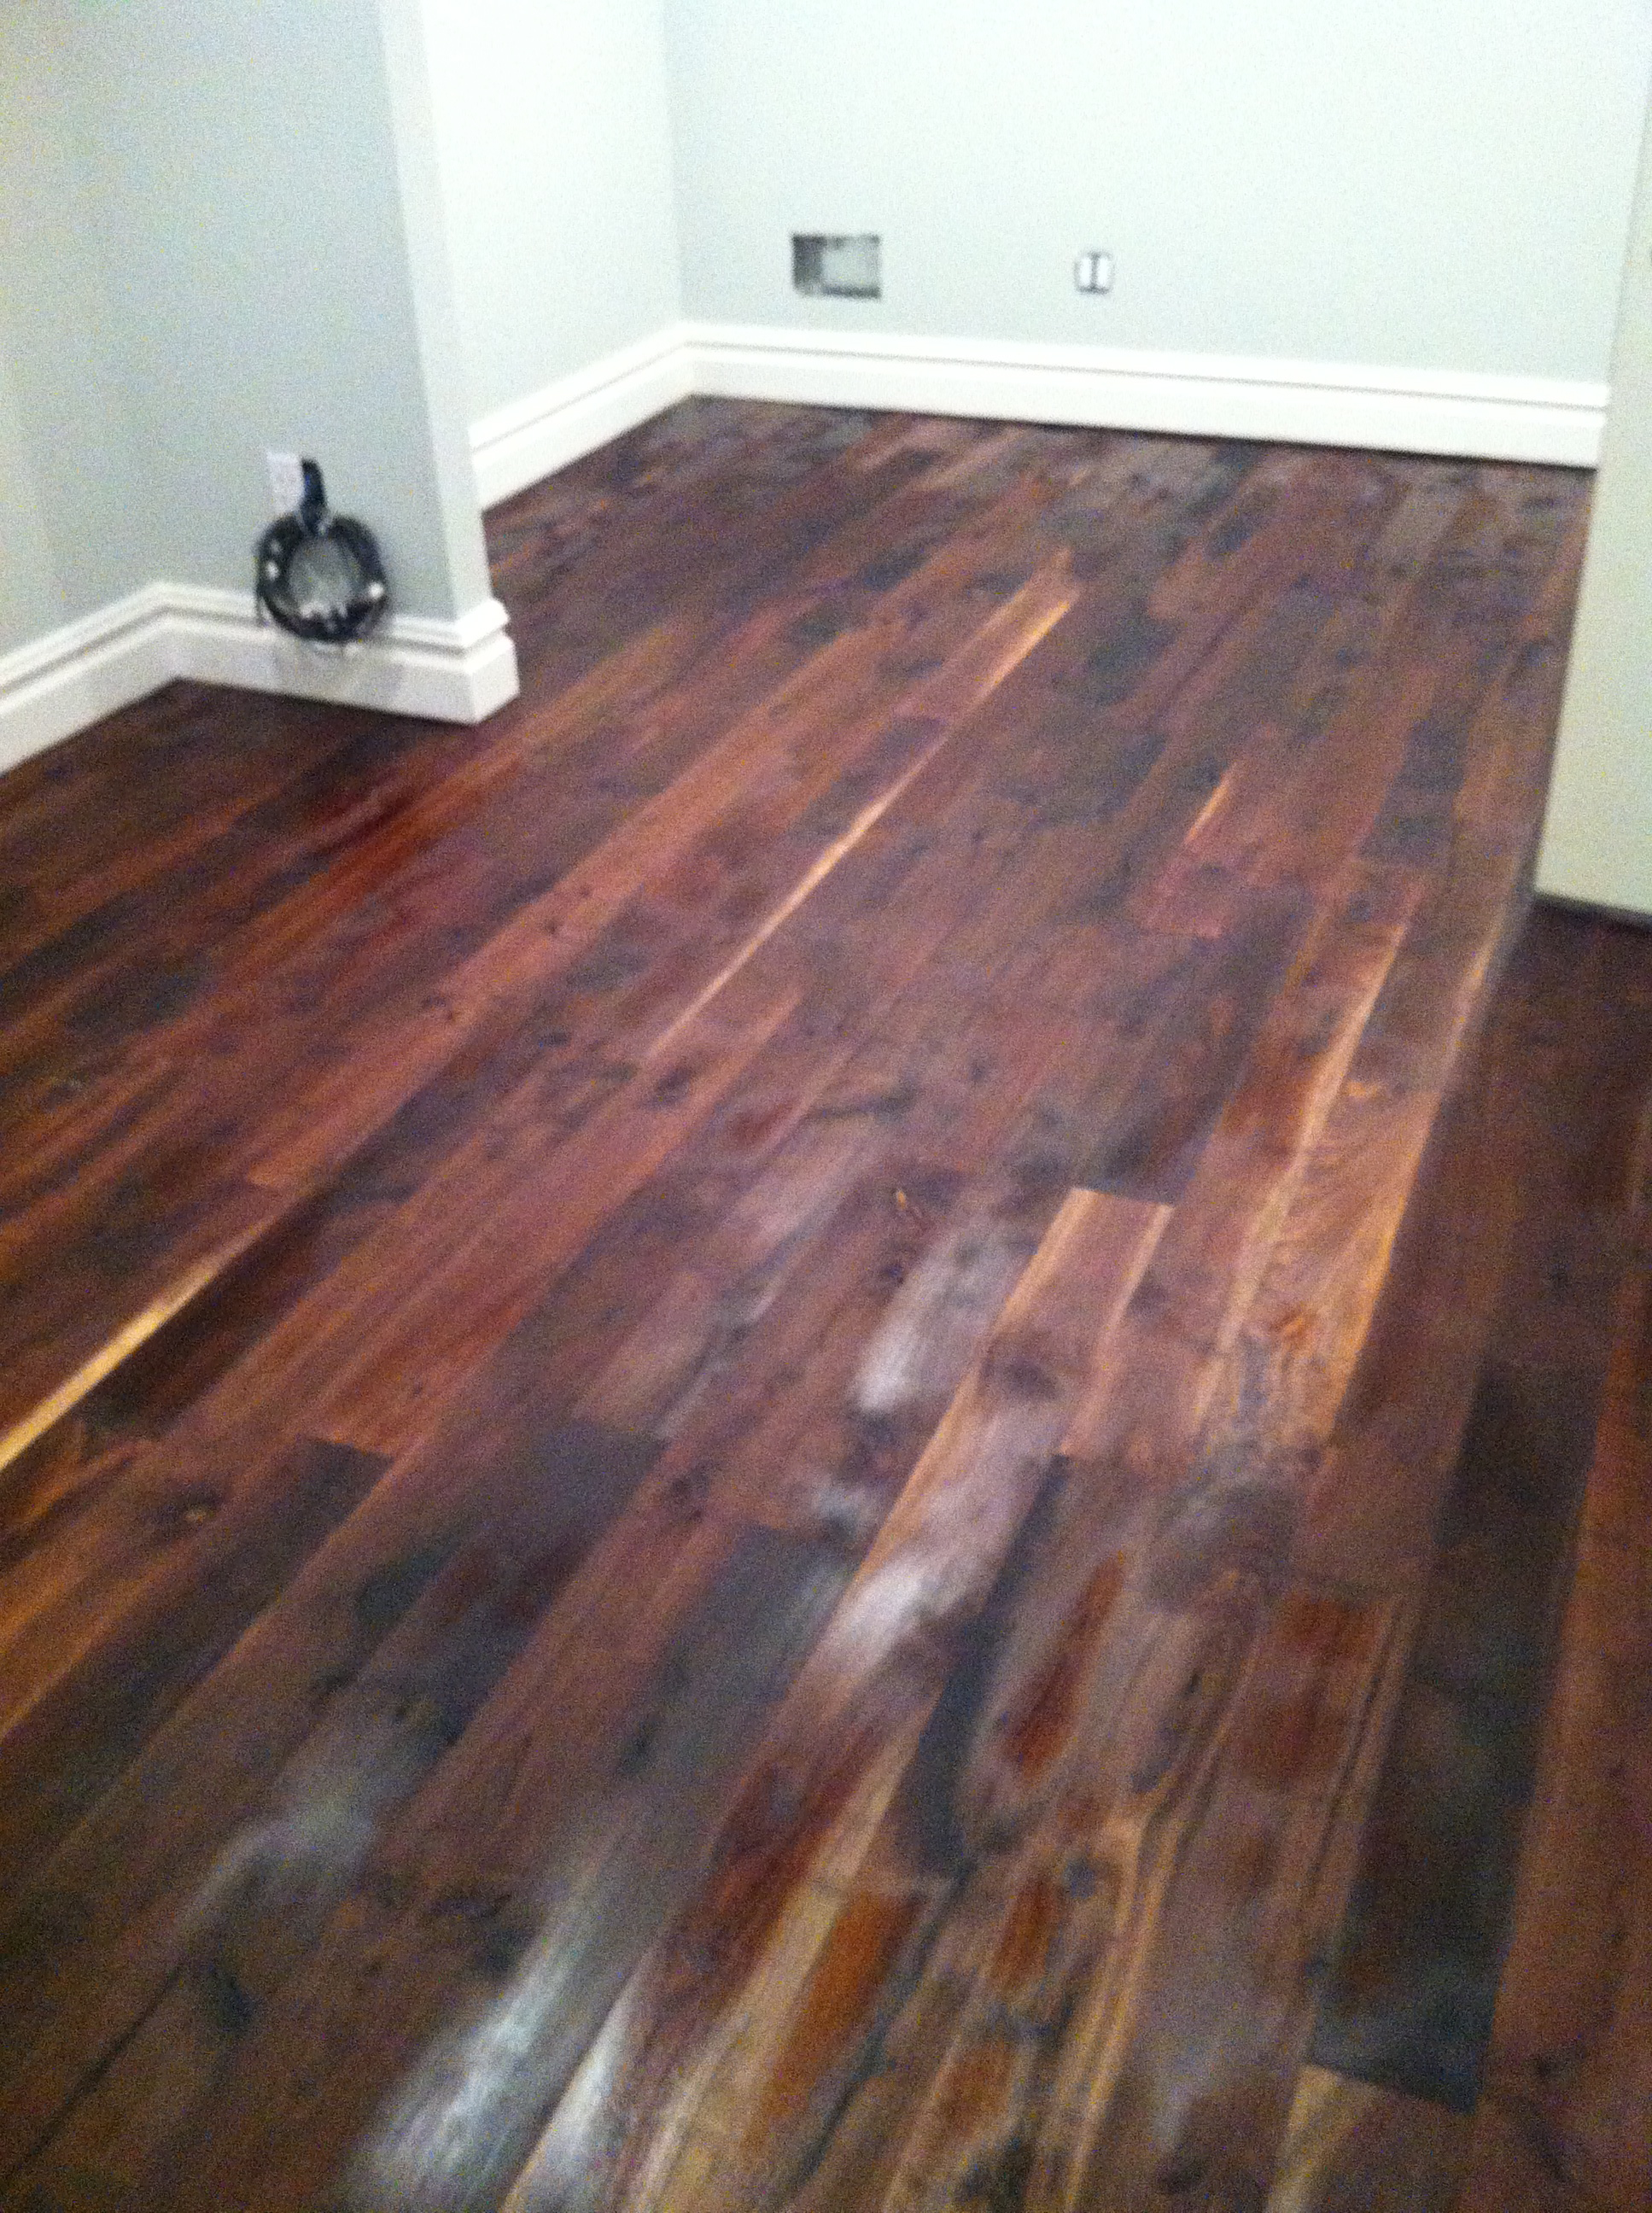 Experiences with finishing Walnut Floors